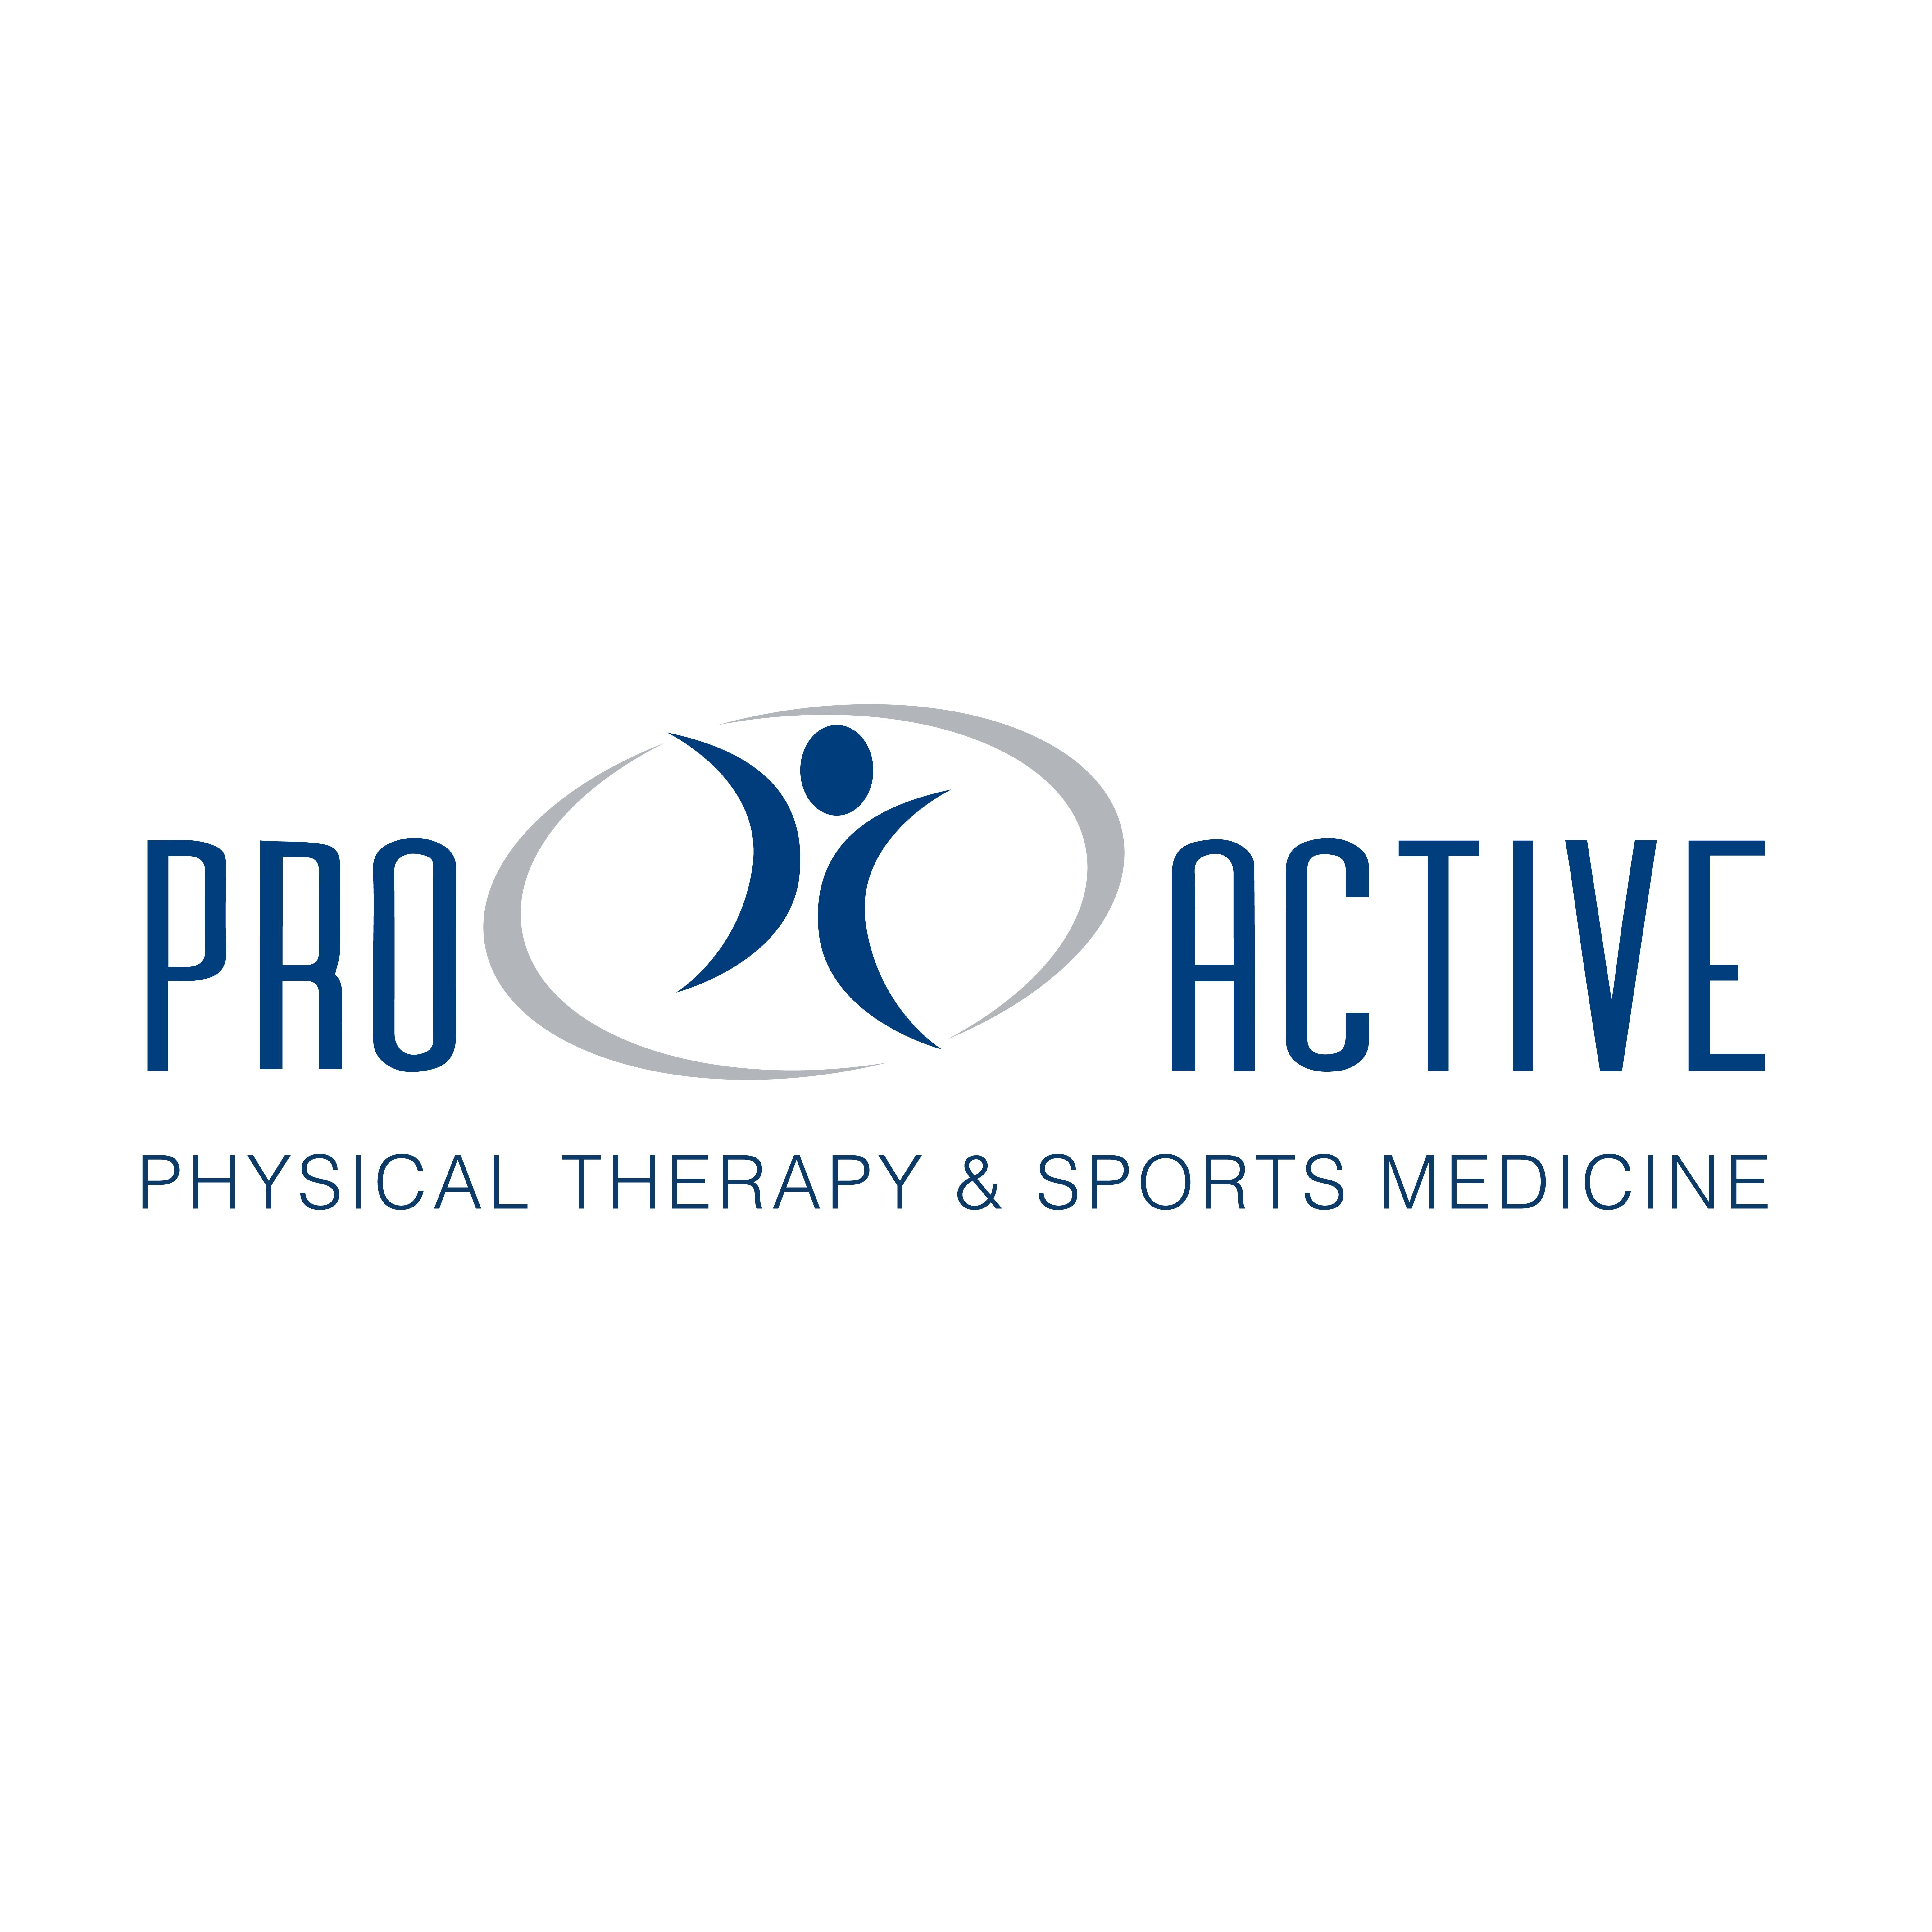 Pro Active Physical Therapy & Sports Medicine image 0